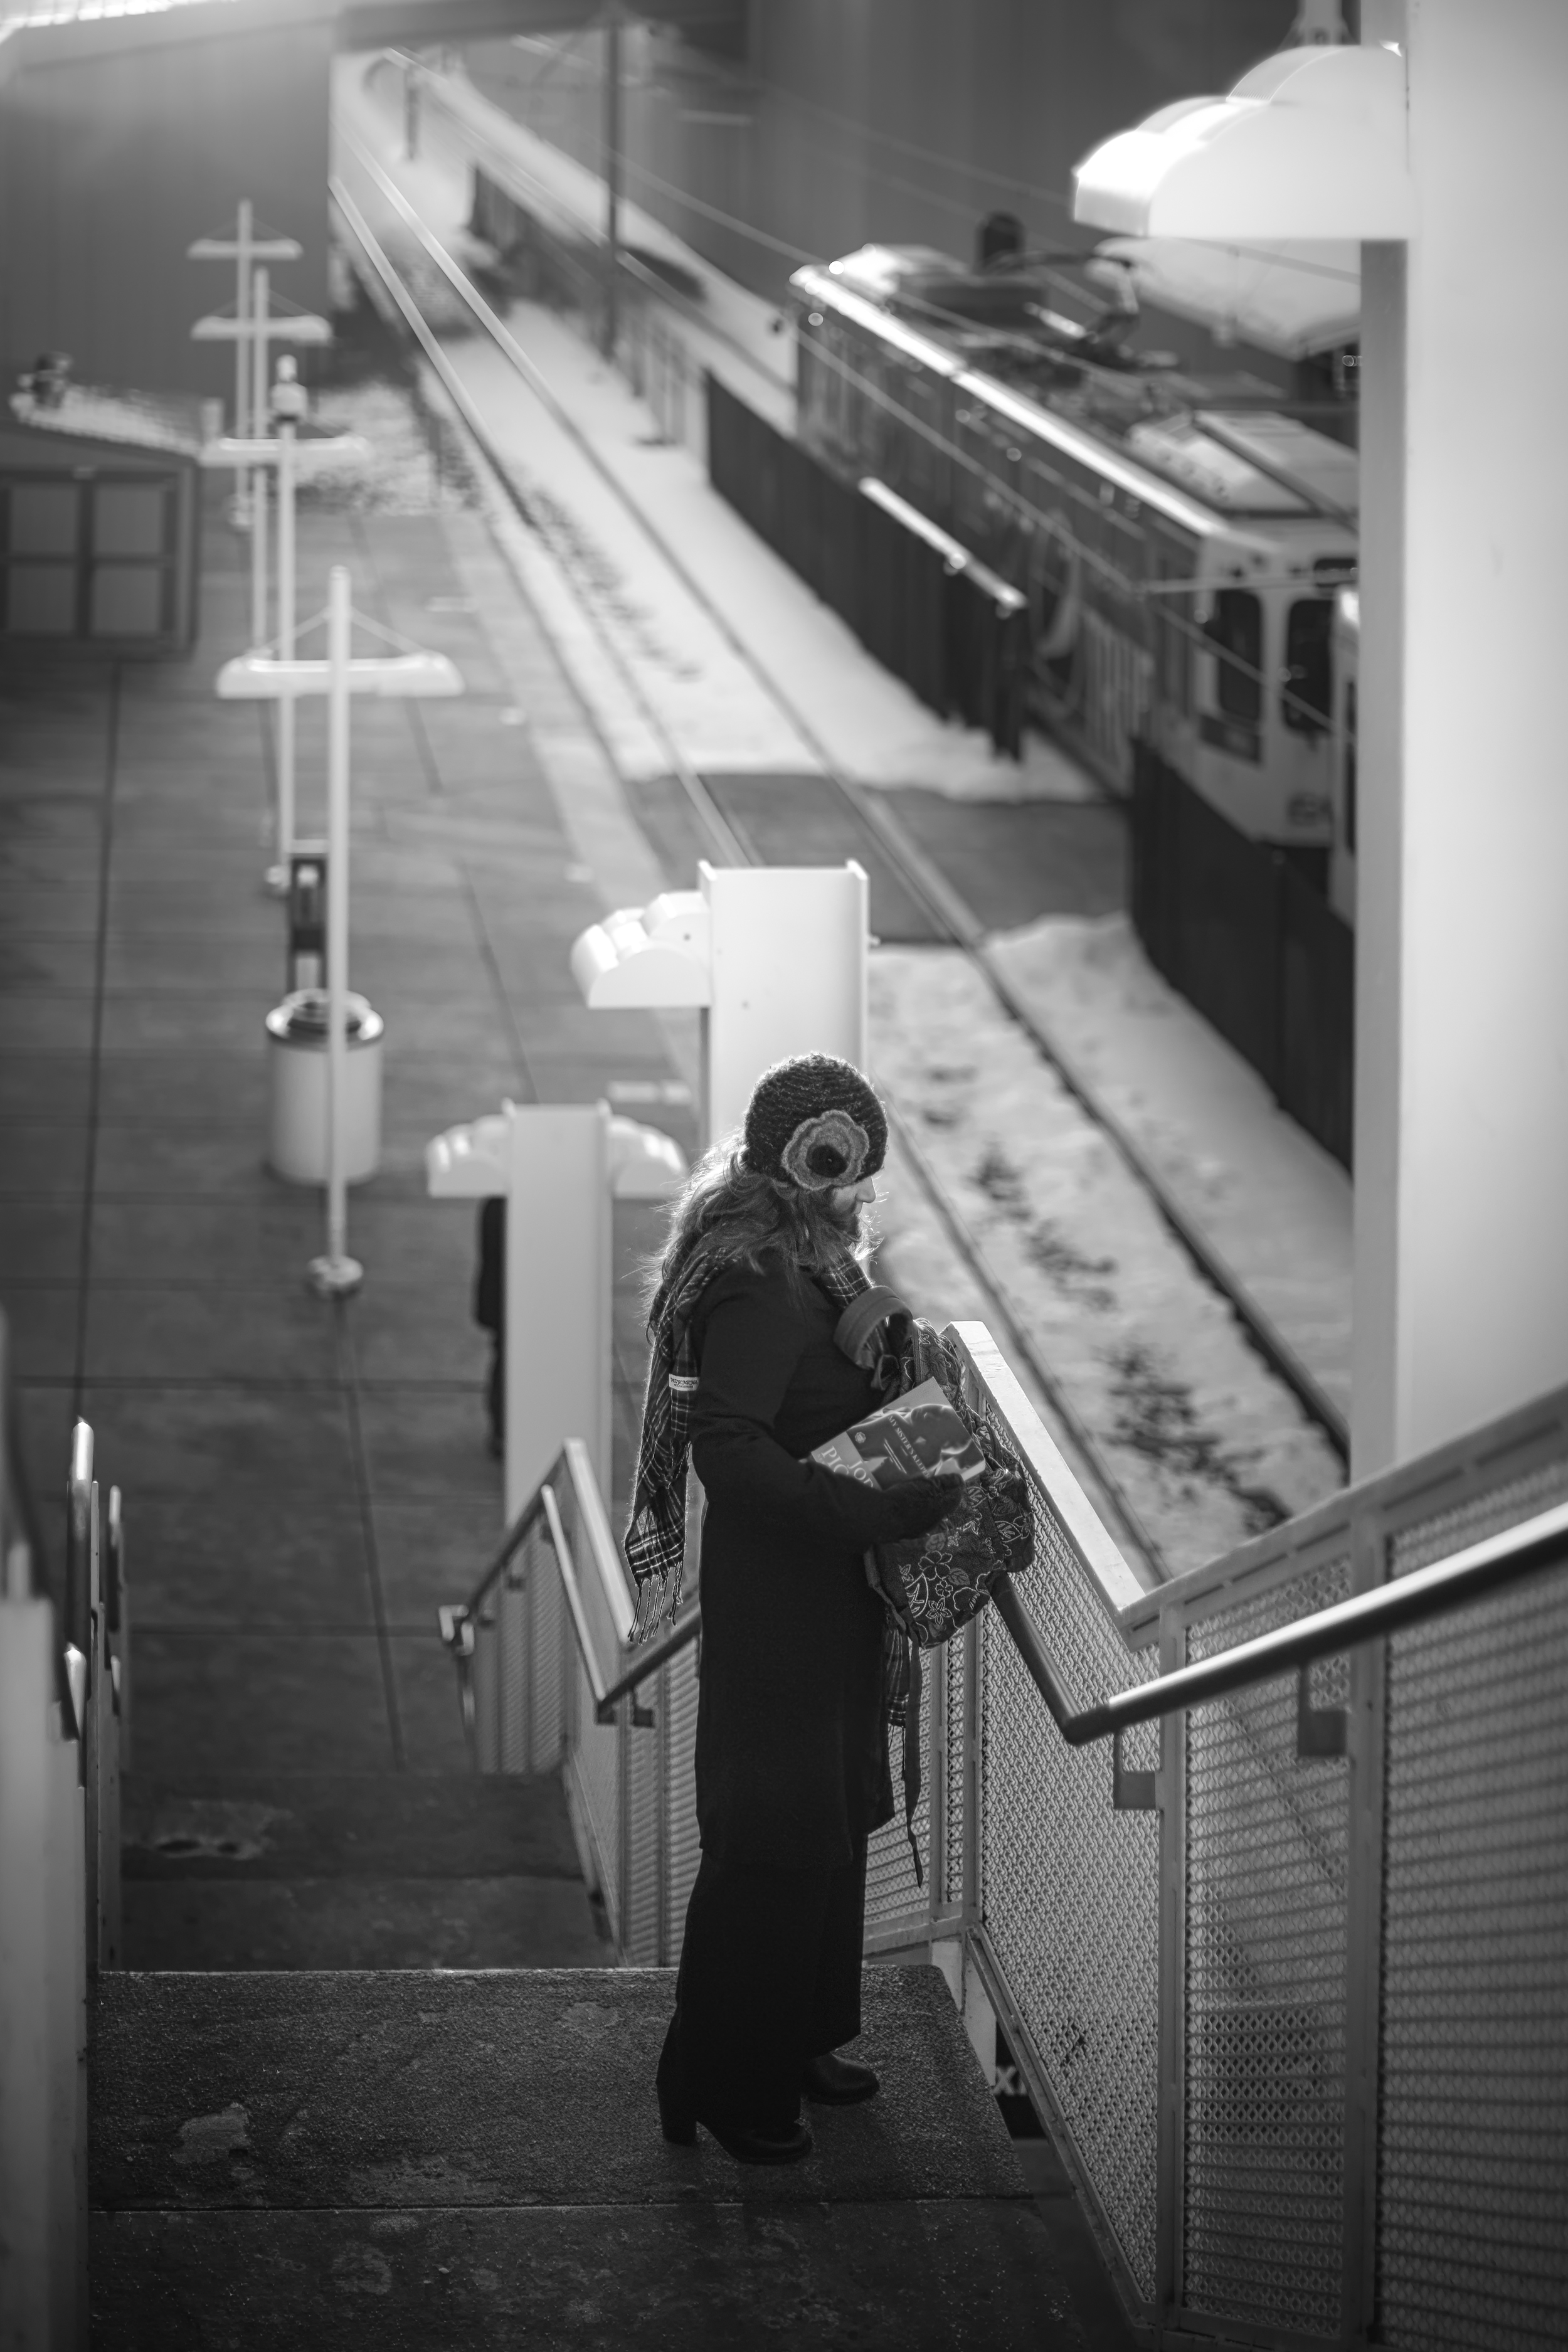 A women standing on the stairs at the train station.